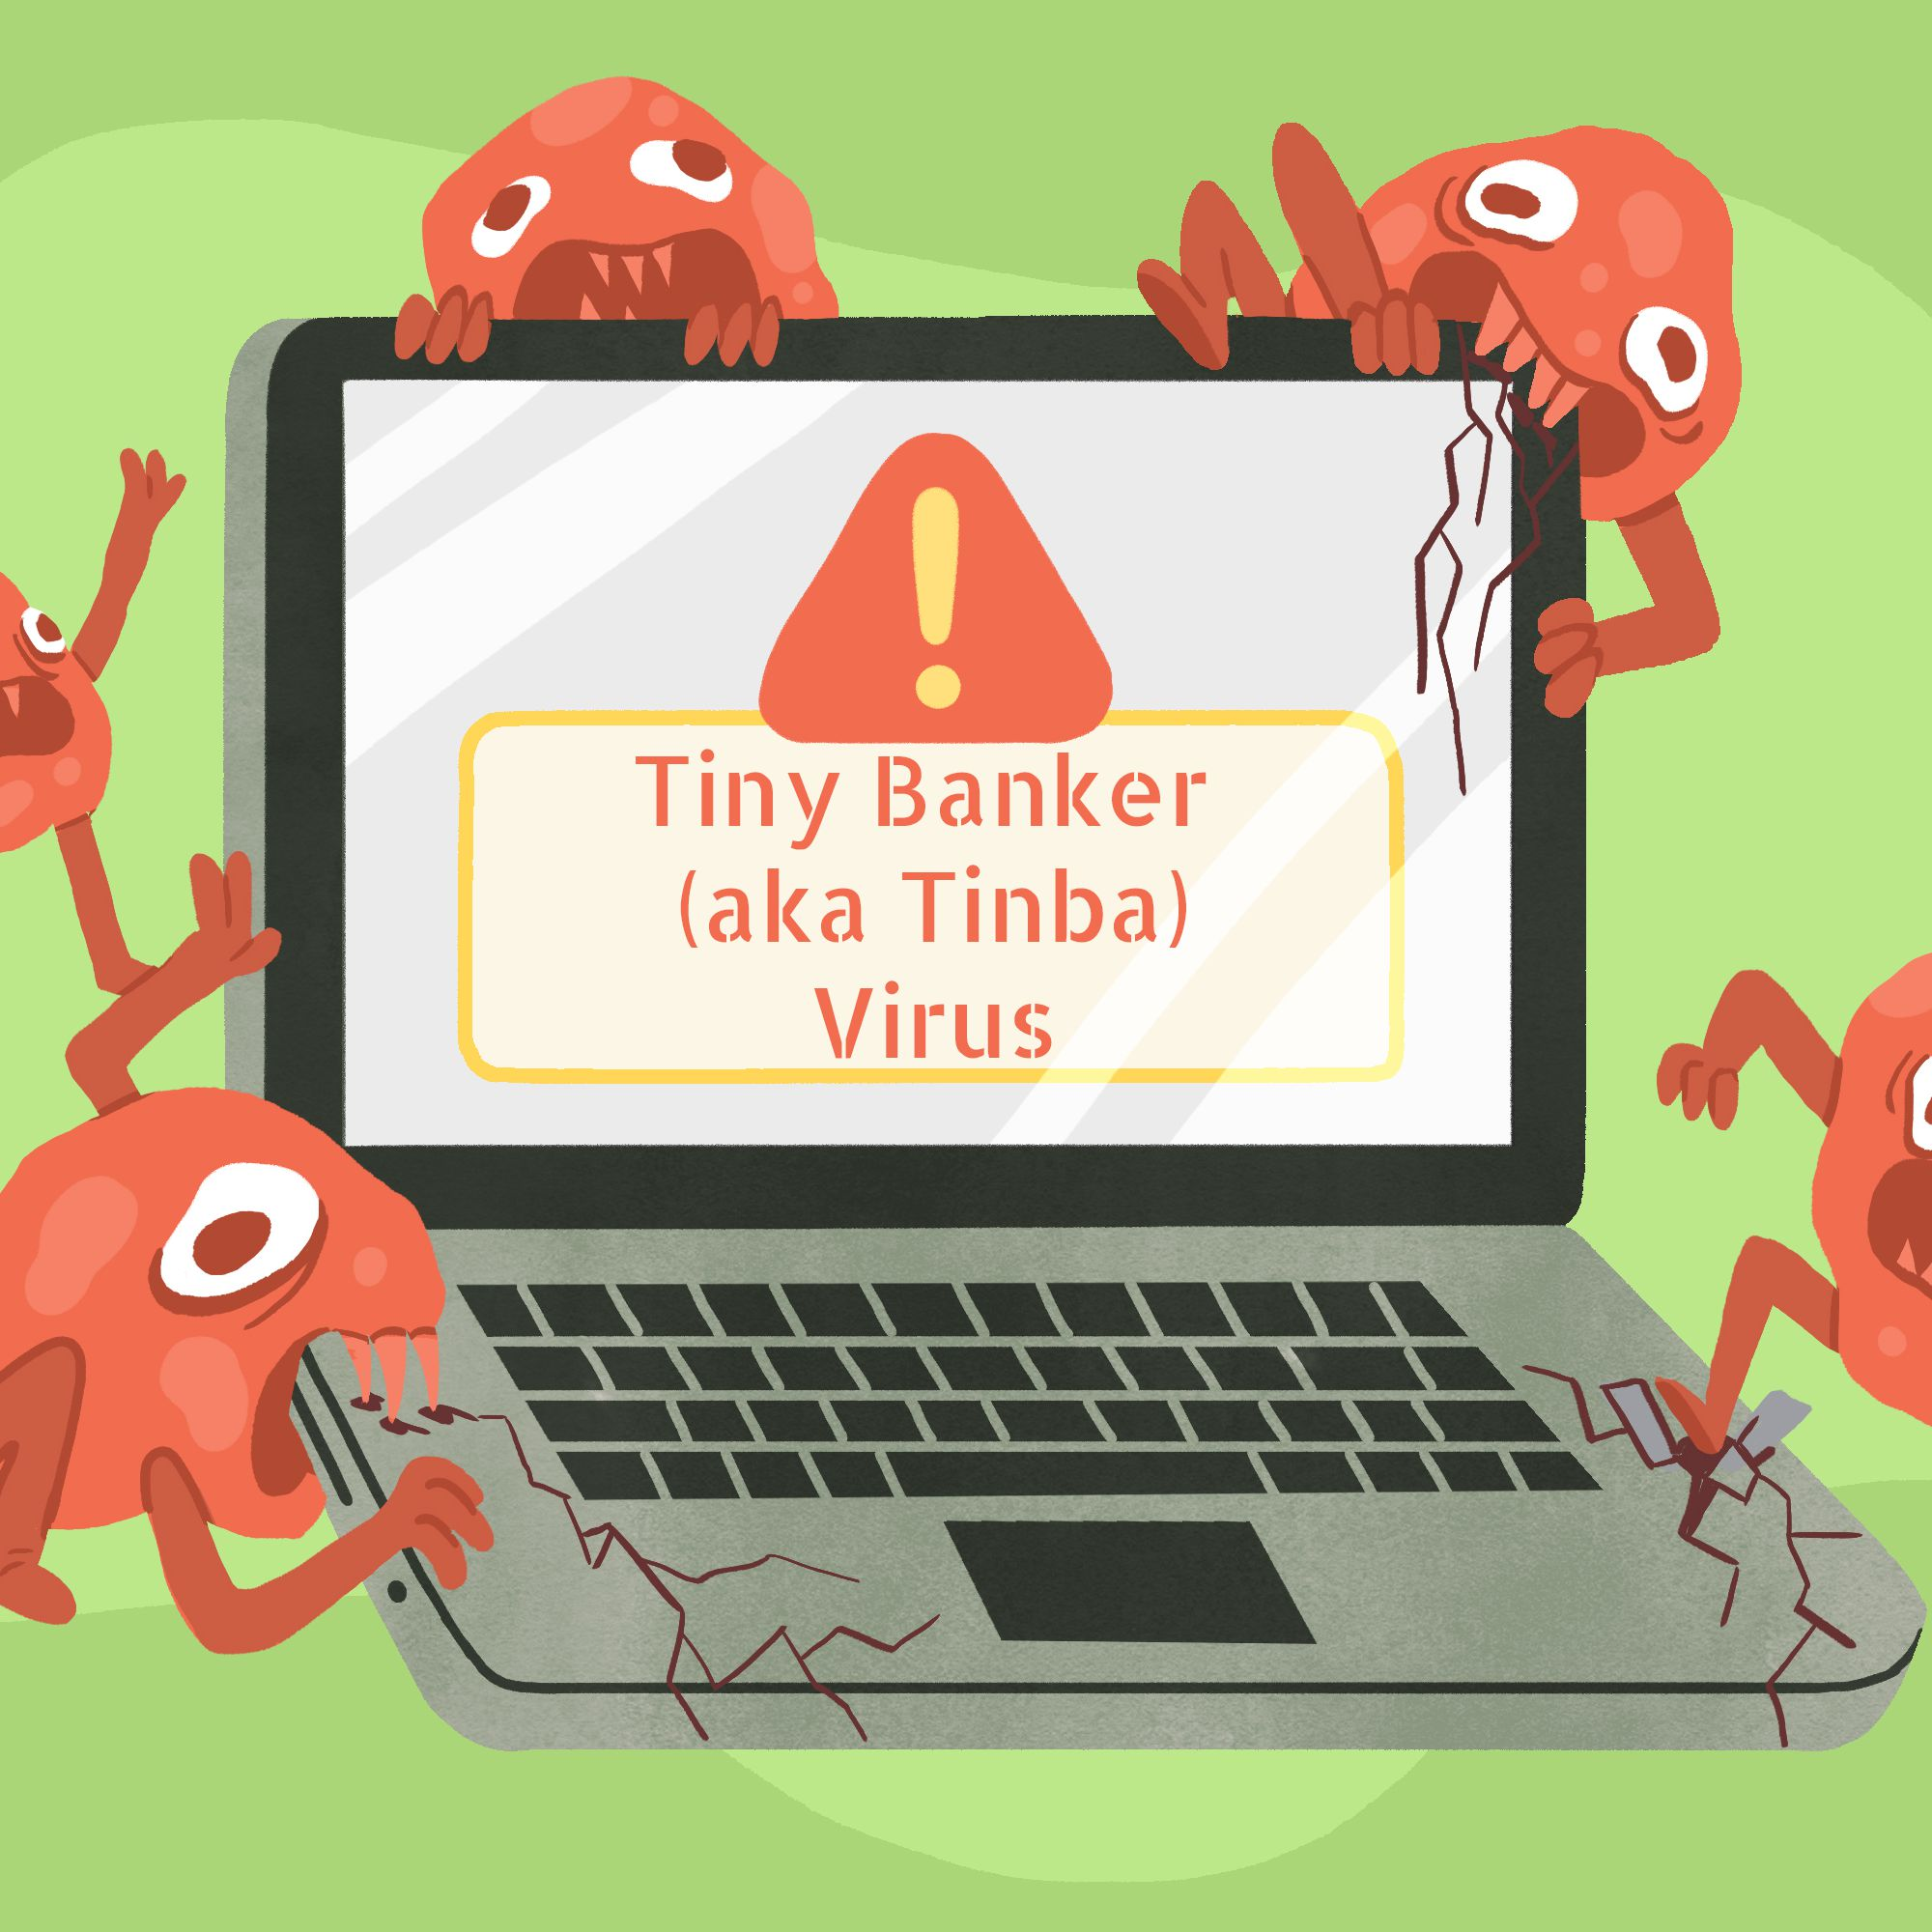 Tiny Banker Trojan (aka Tinba Virus): What It Is and How to Remove It